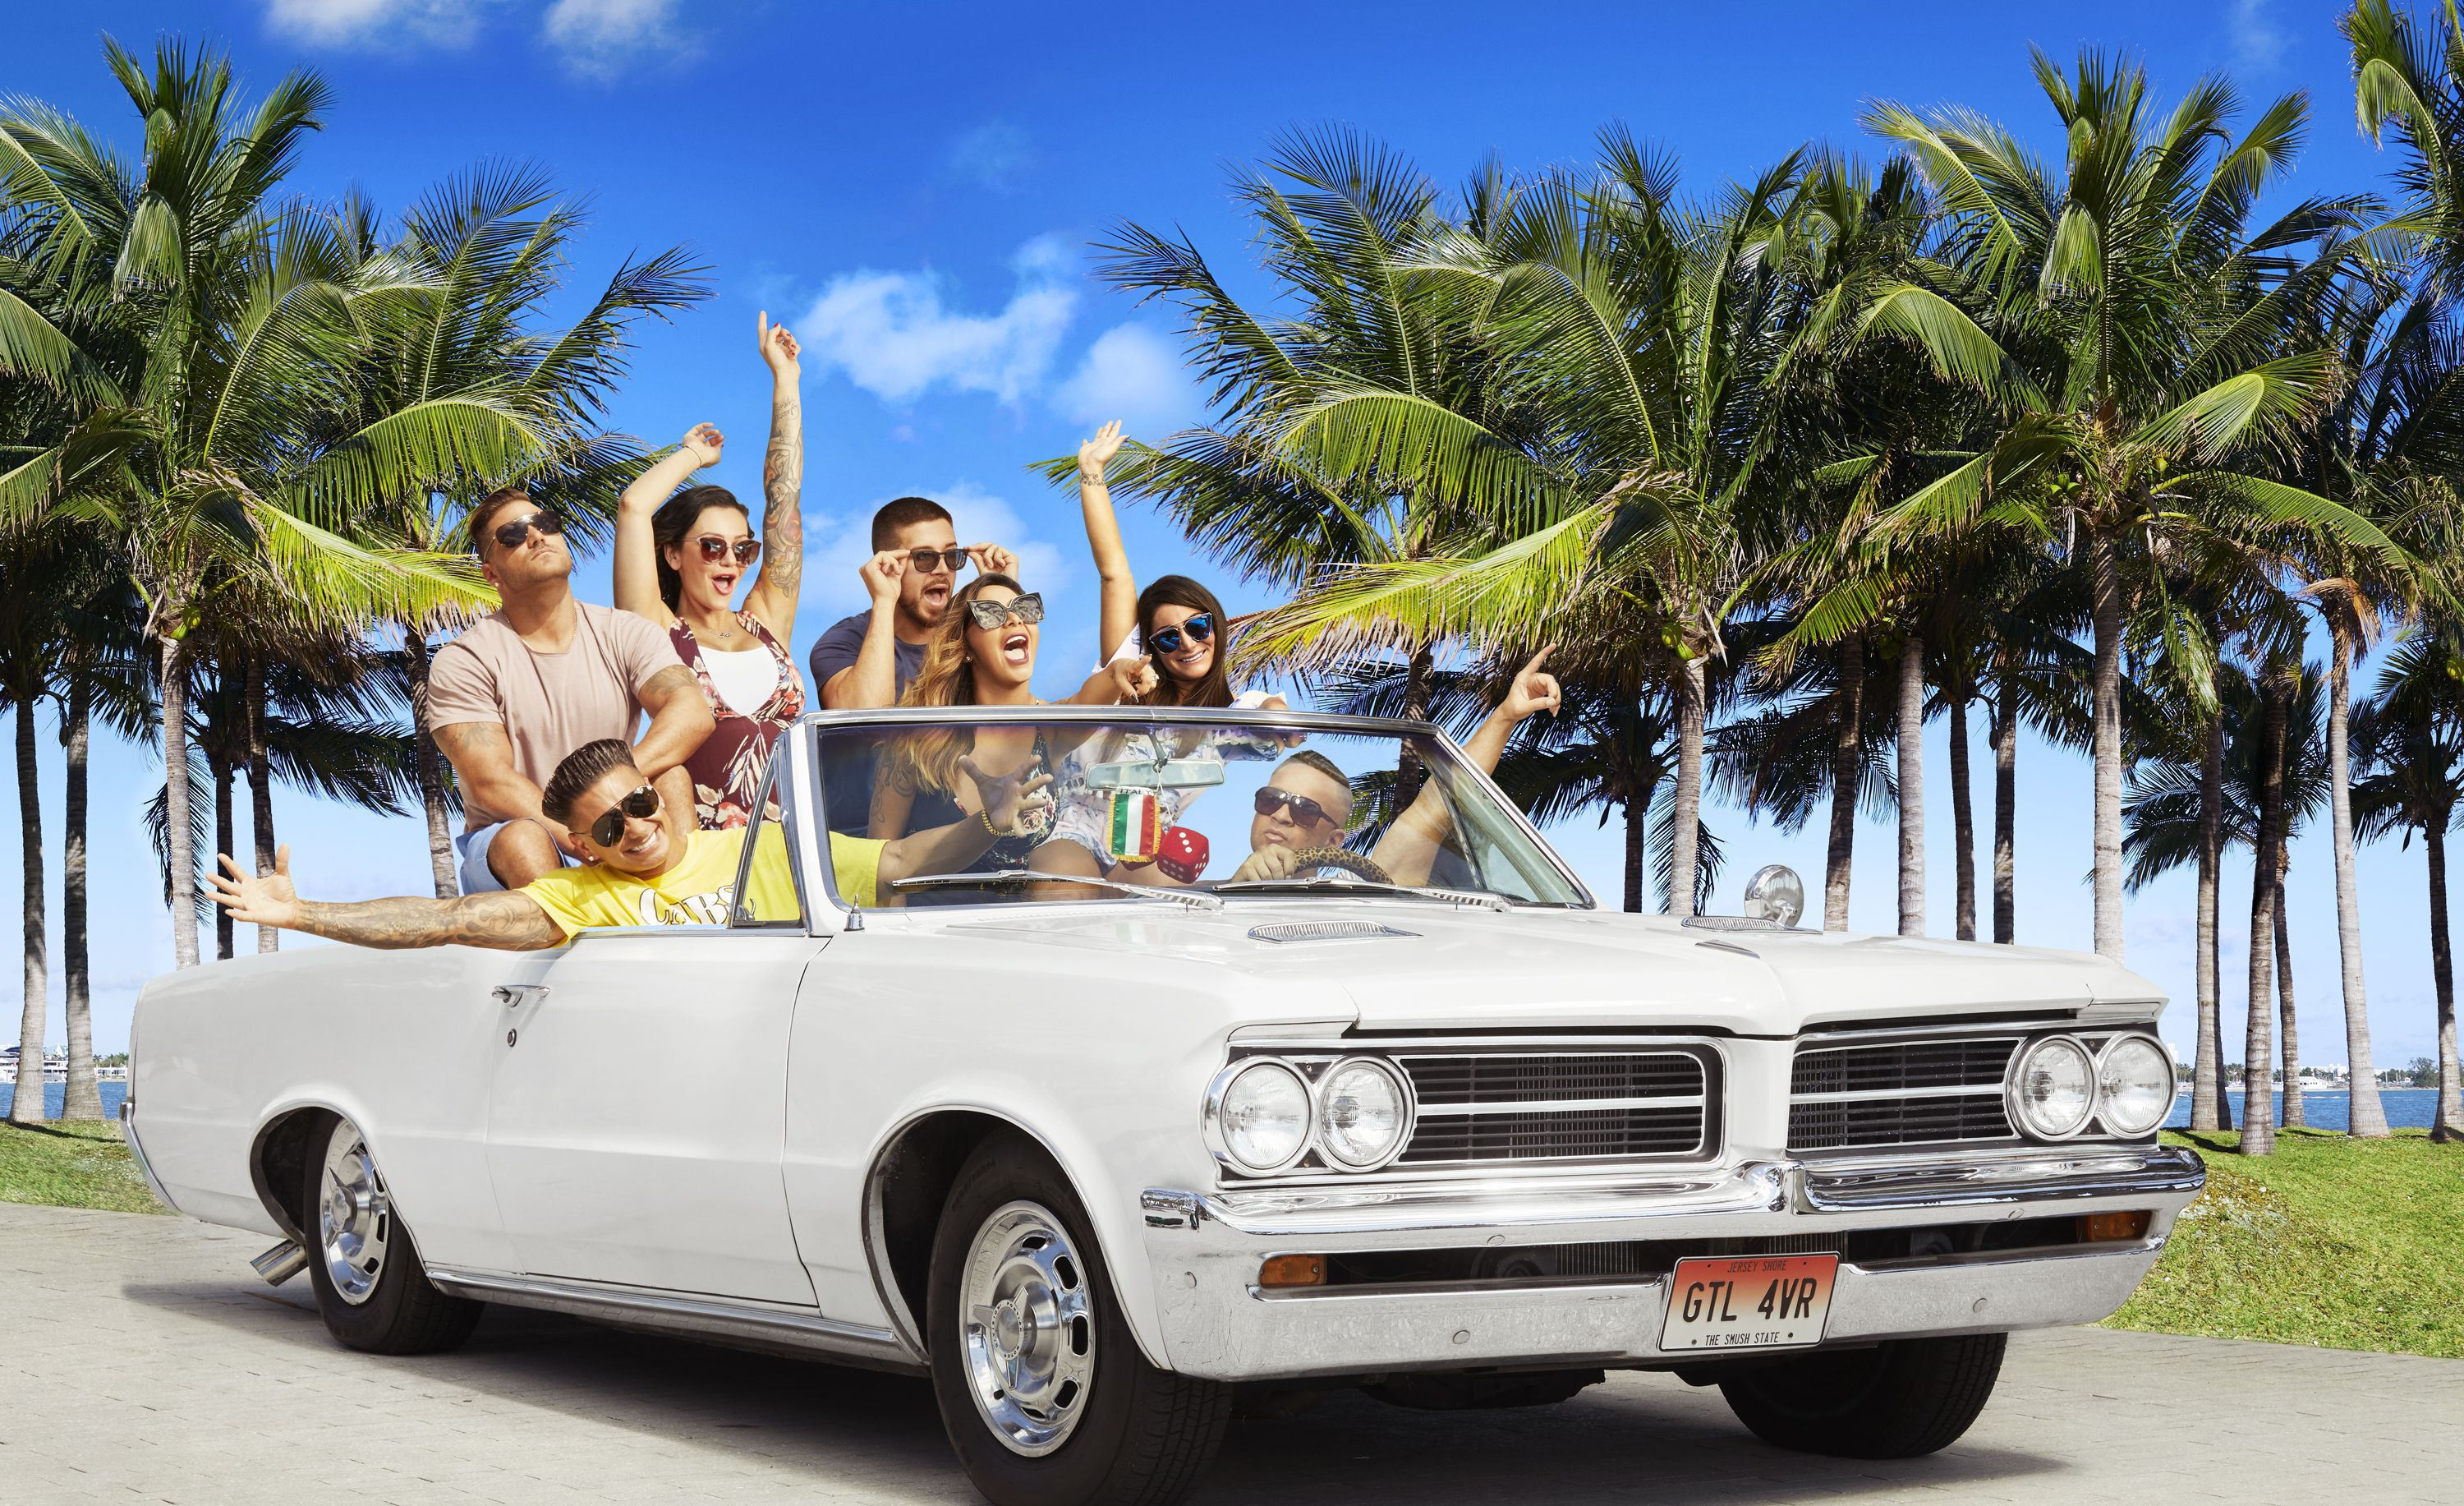 Jersey Shore Vacation Car